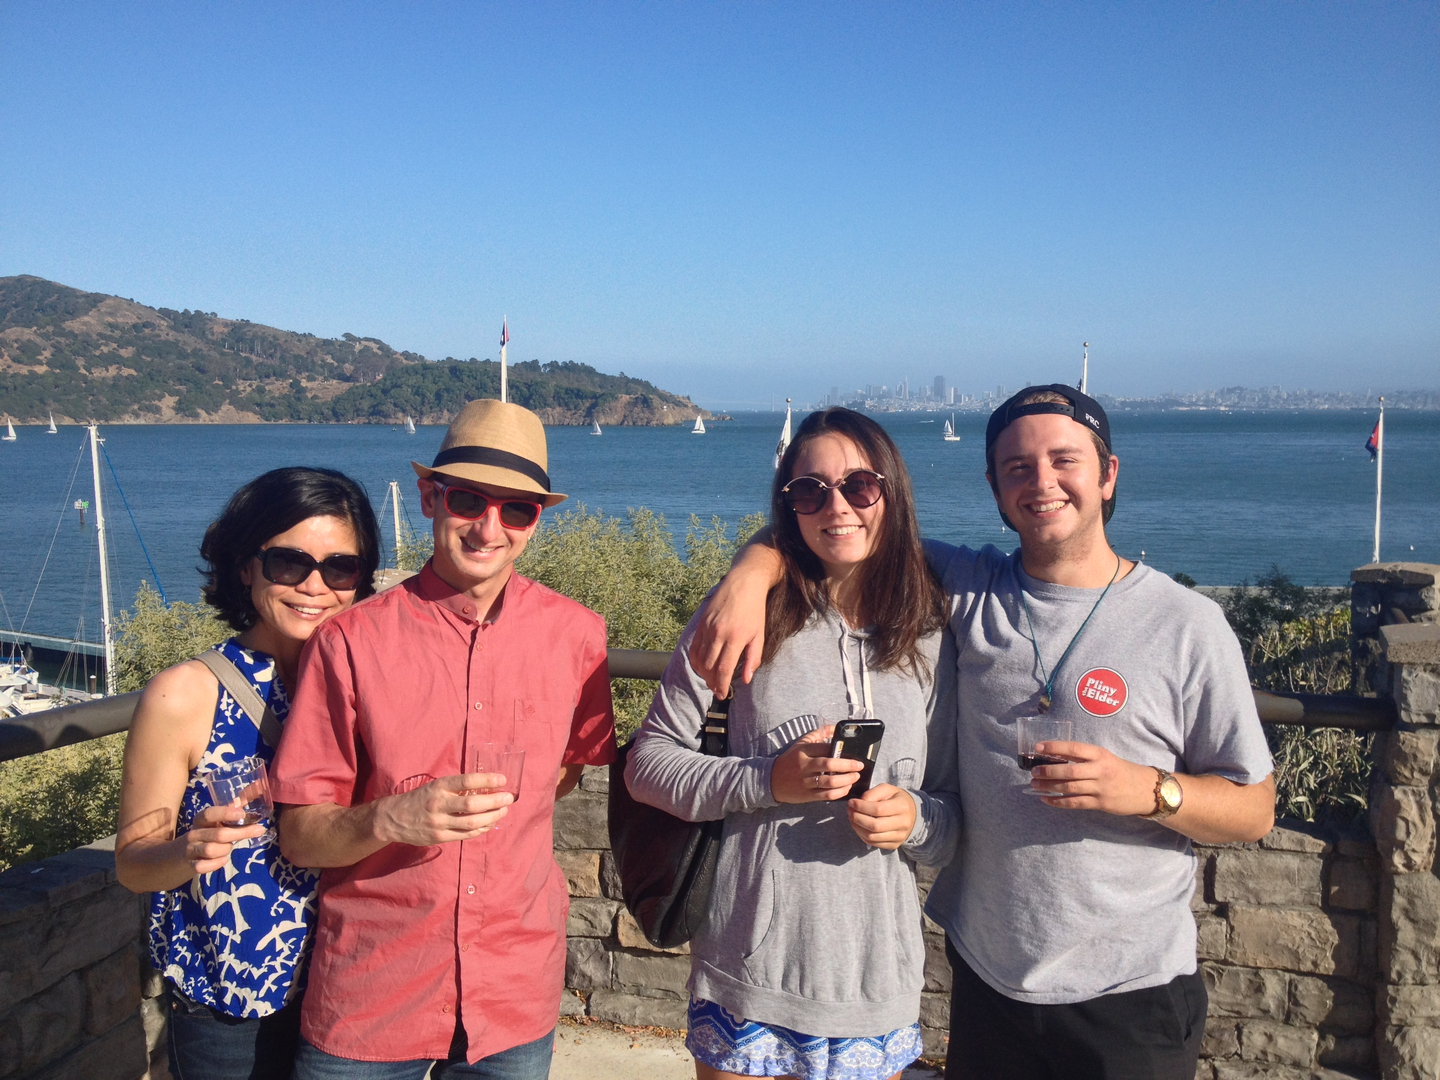 Friends Wine Tasting Along the Sausalito Waterfront